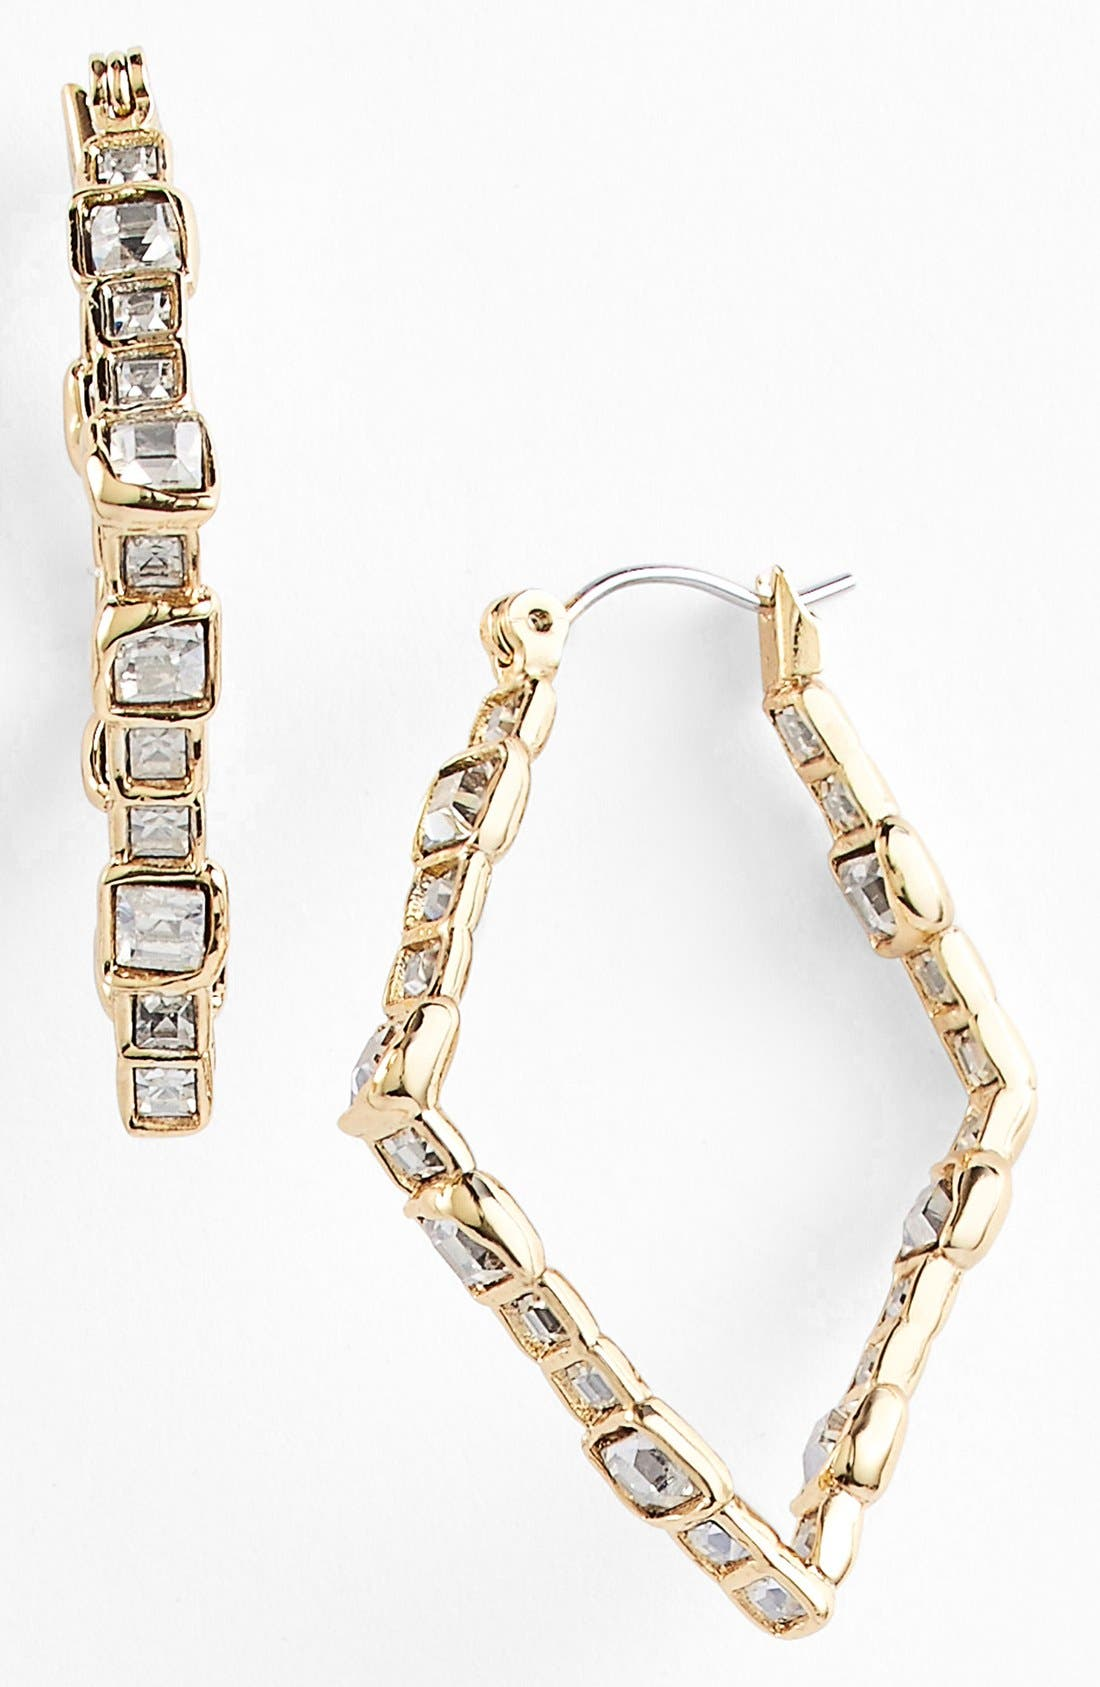 Main Image - Alexis Bittar 'Miss Havisham' Geometric Drop Earrings